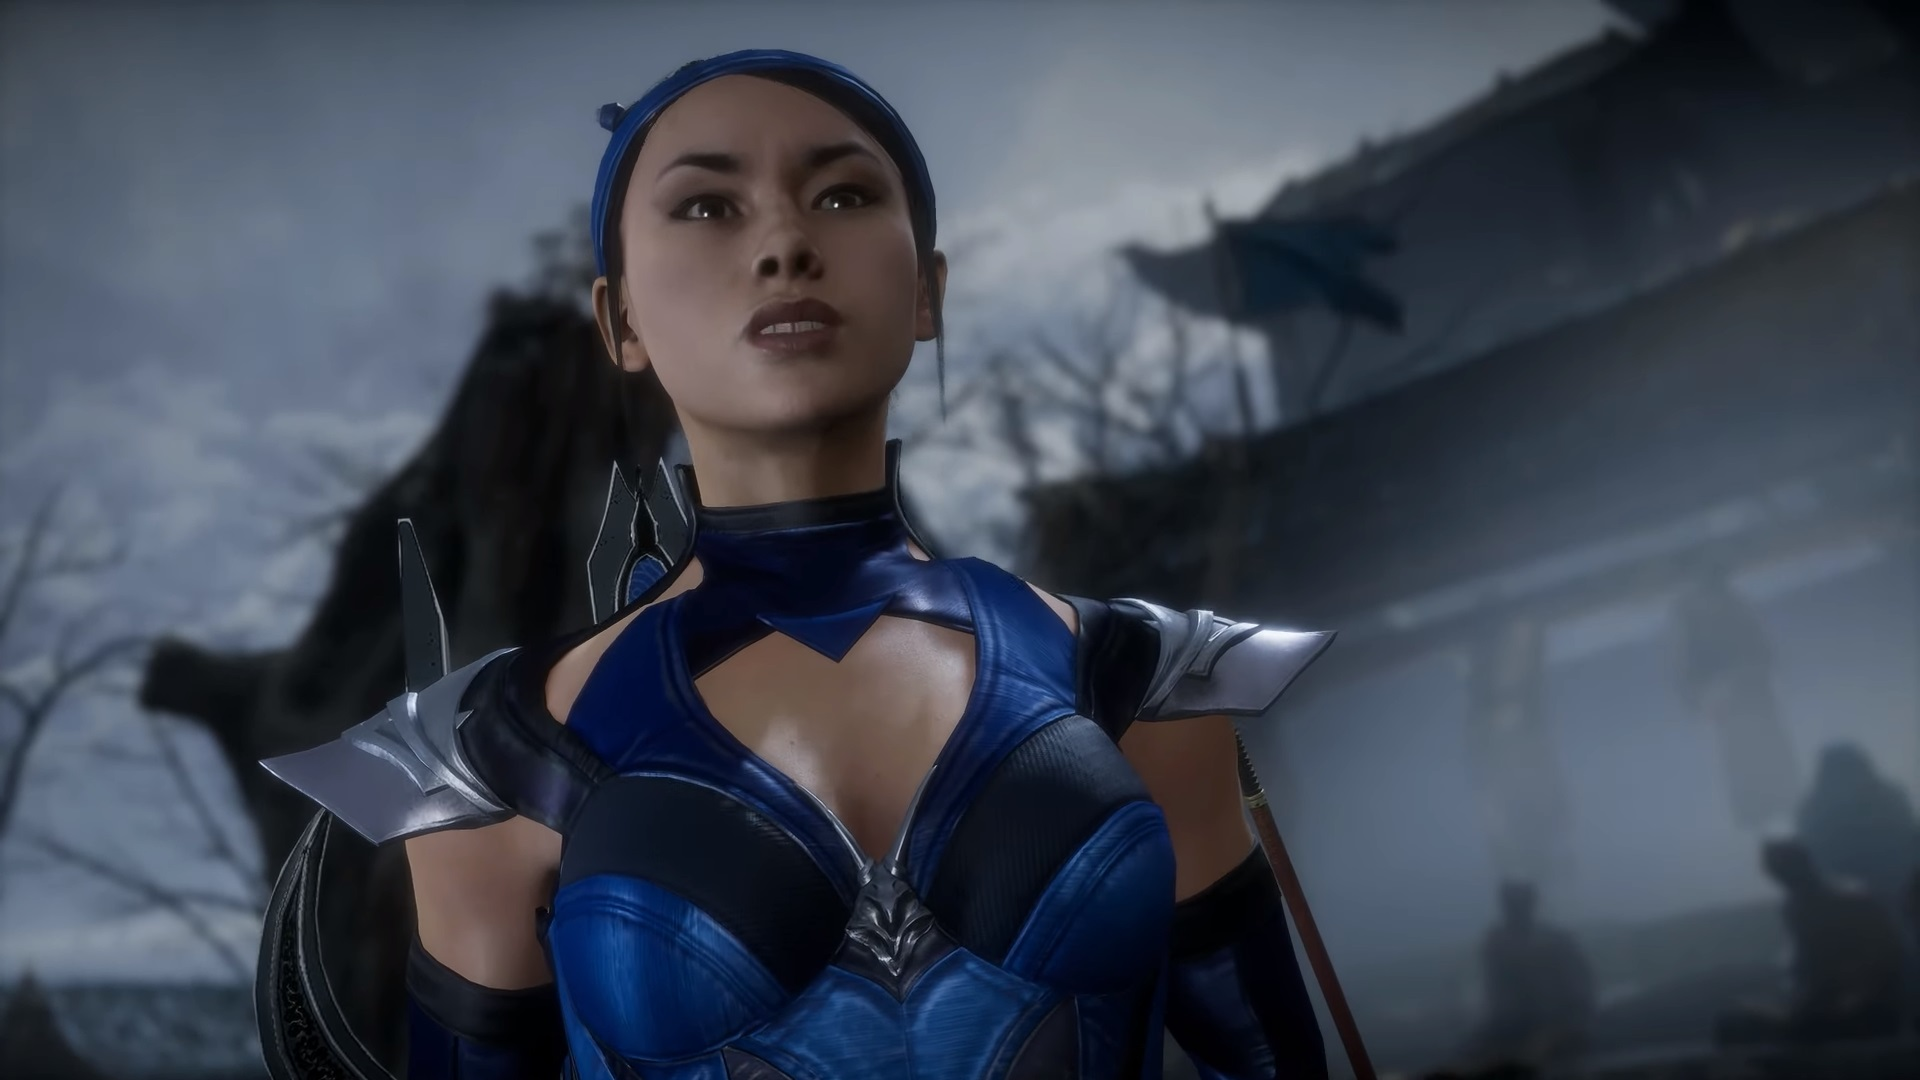 mortal kombat characters female costume